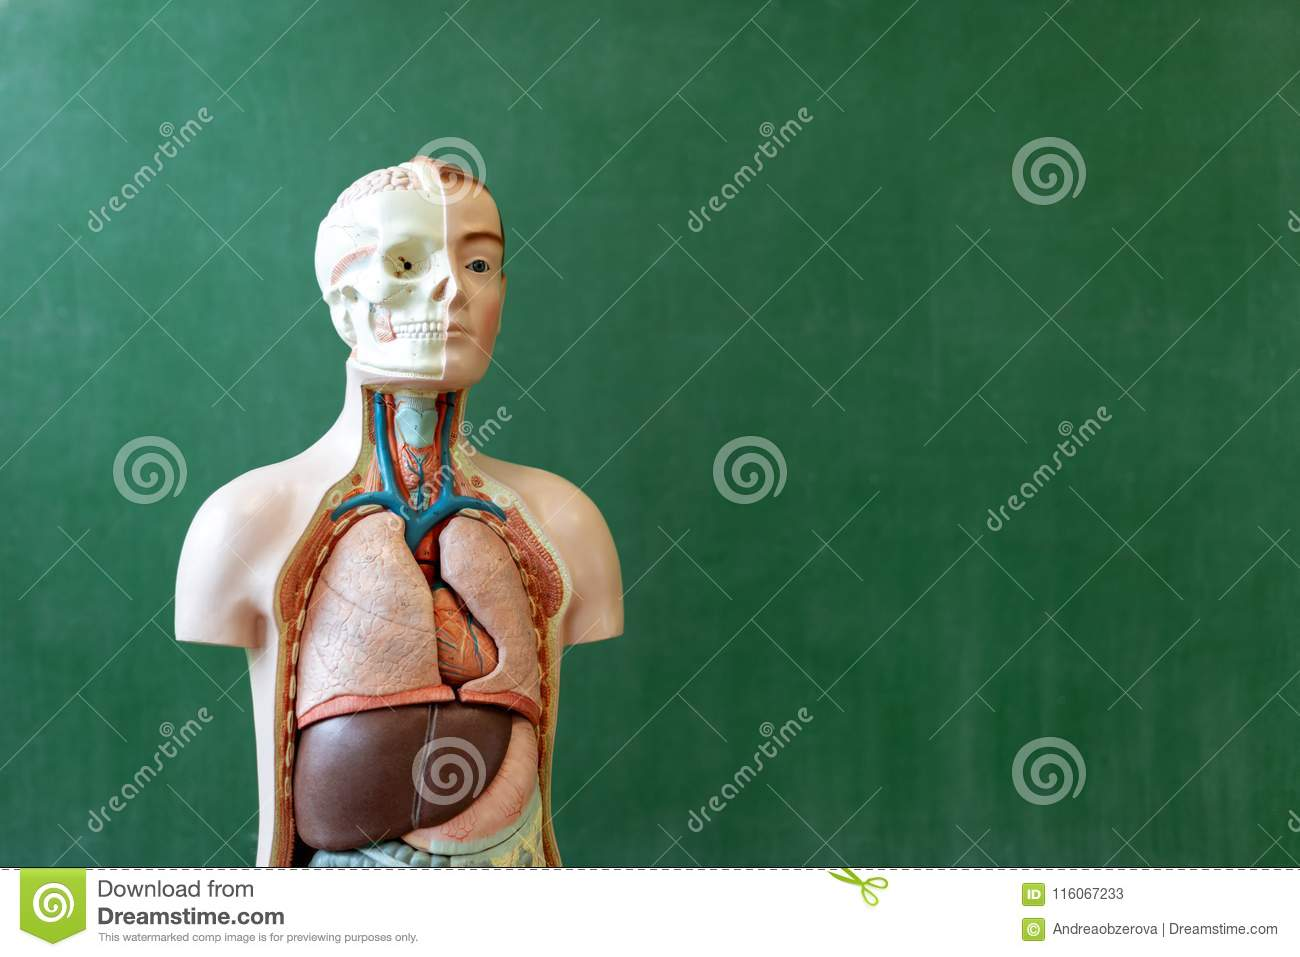 Artificial Human Body Model Biology Class Anatomy Teaching Aid